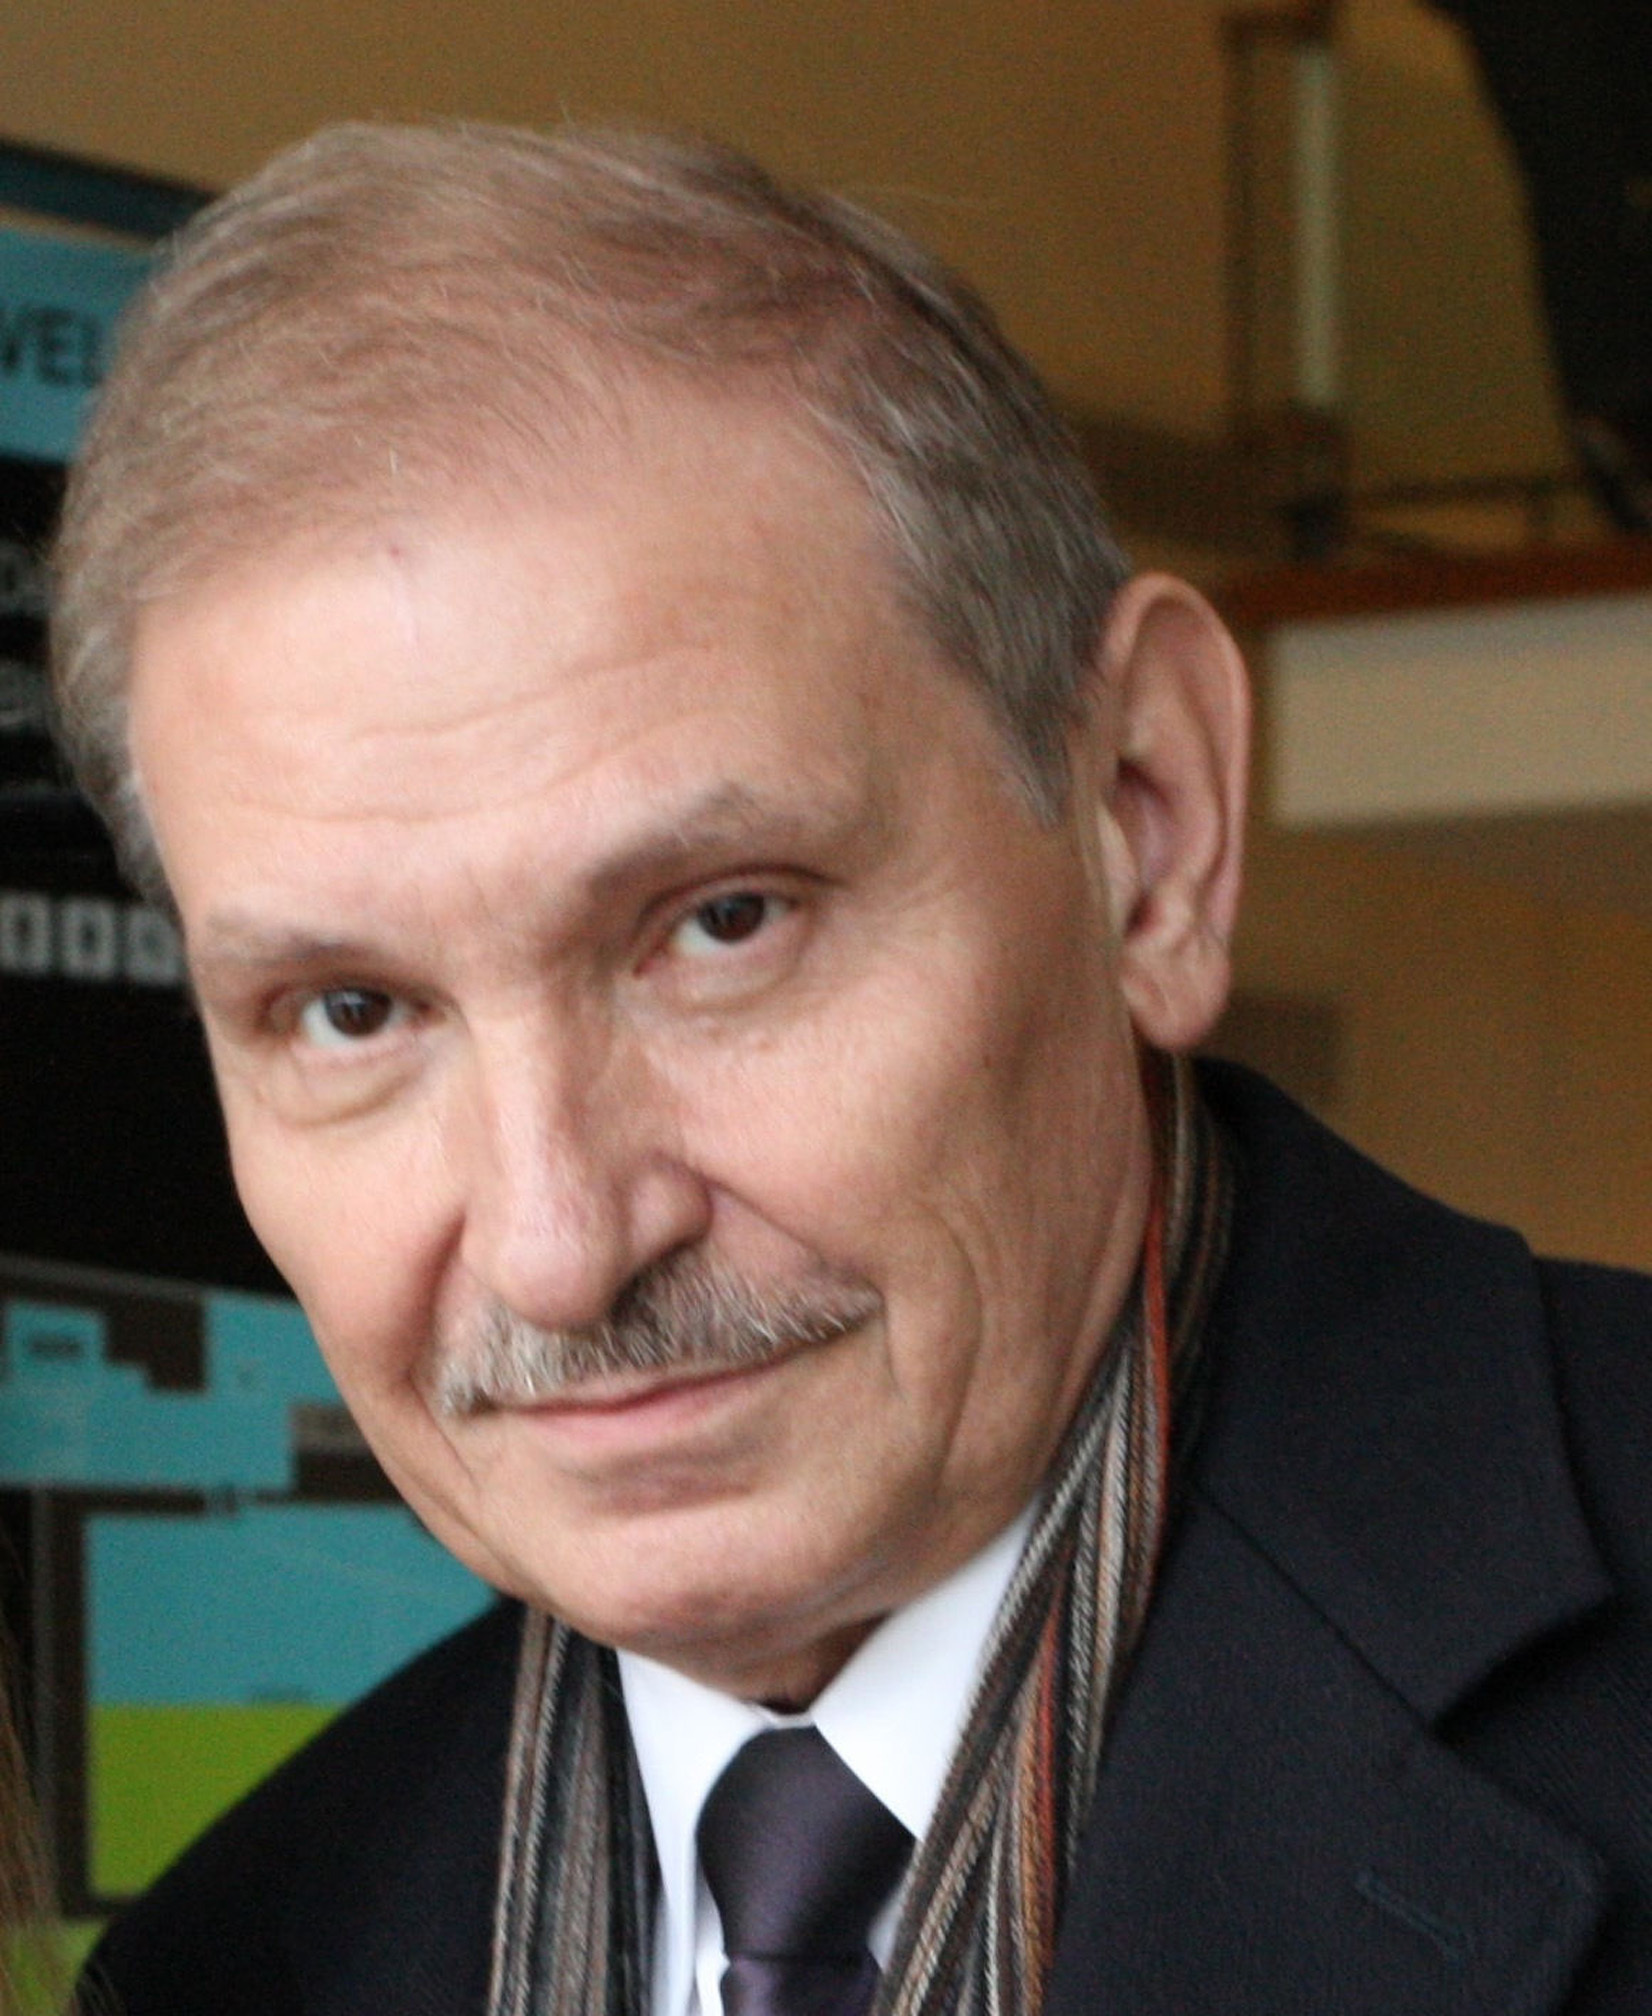 The cause of death of the Russian oligarch Glushkov